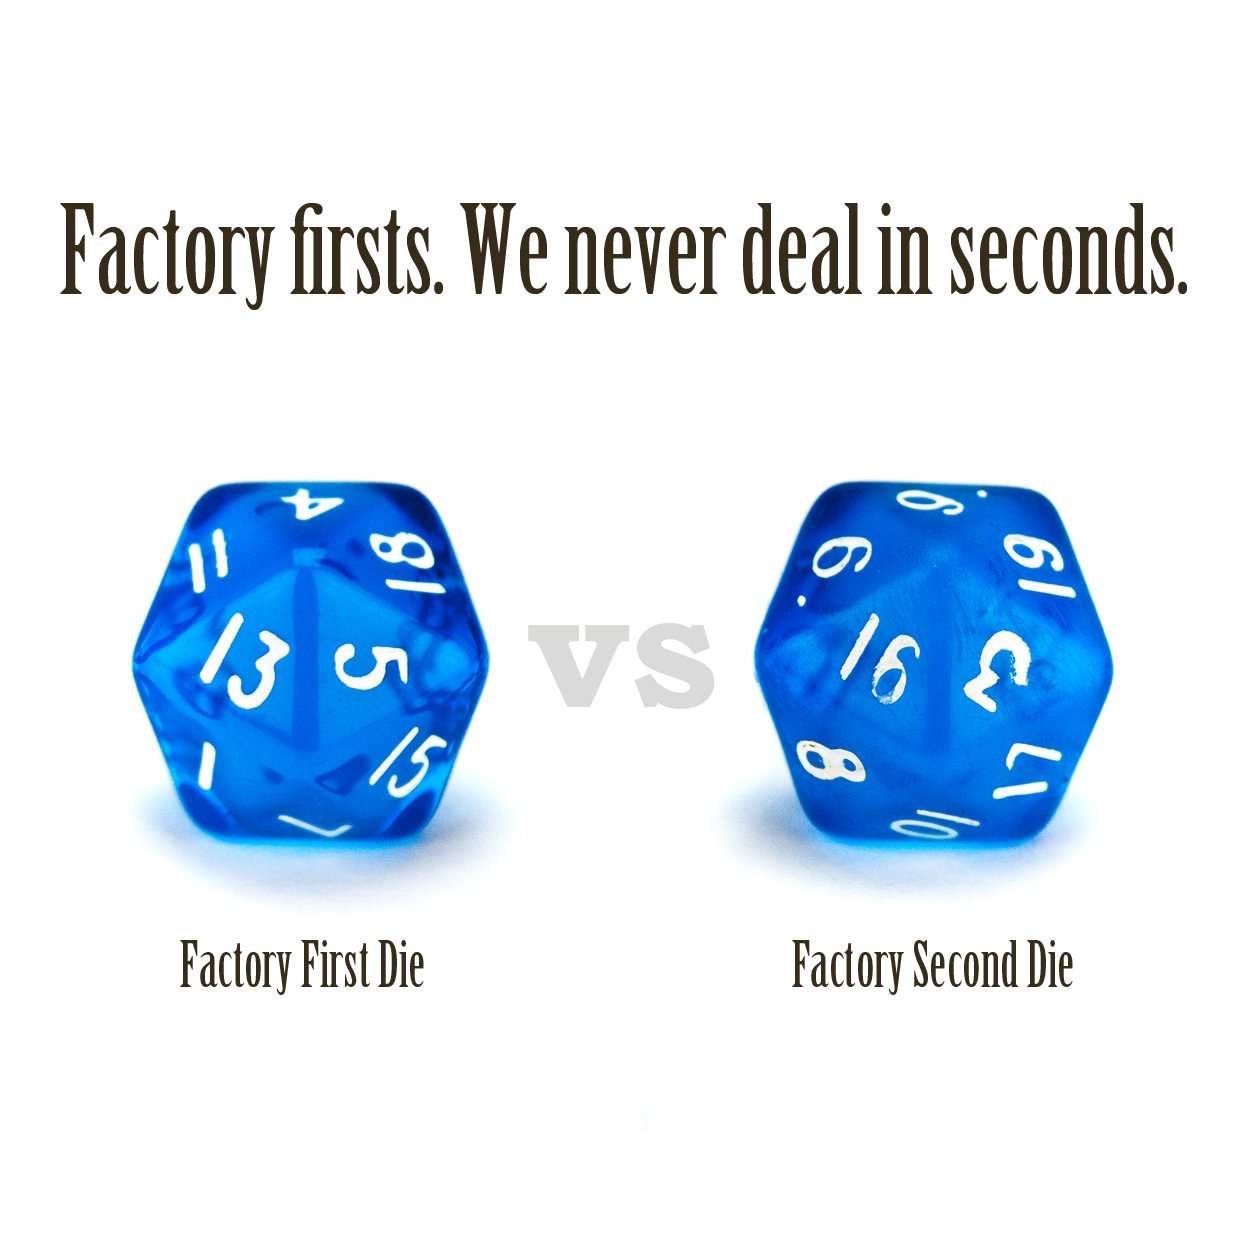 100+ Pack of Random D6 Polyhedral Dice in Multiple Colors By Wiz Dice by Wiz Dice (Image #4)